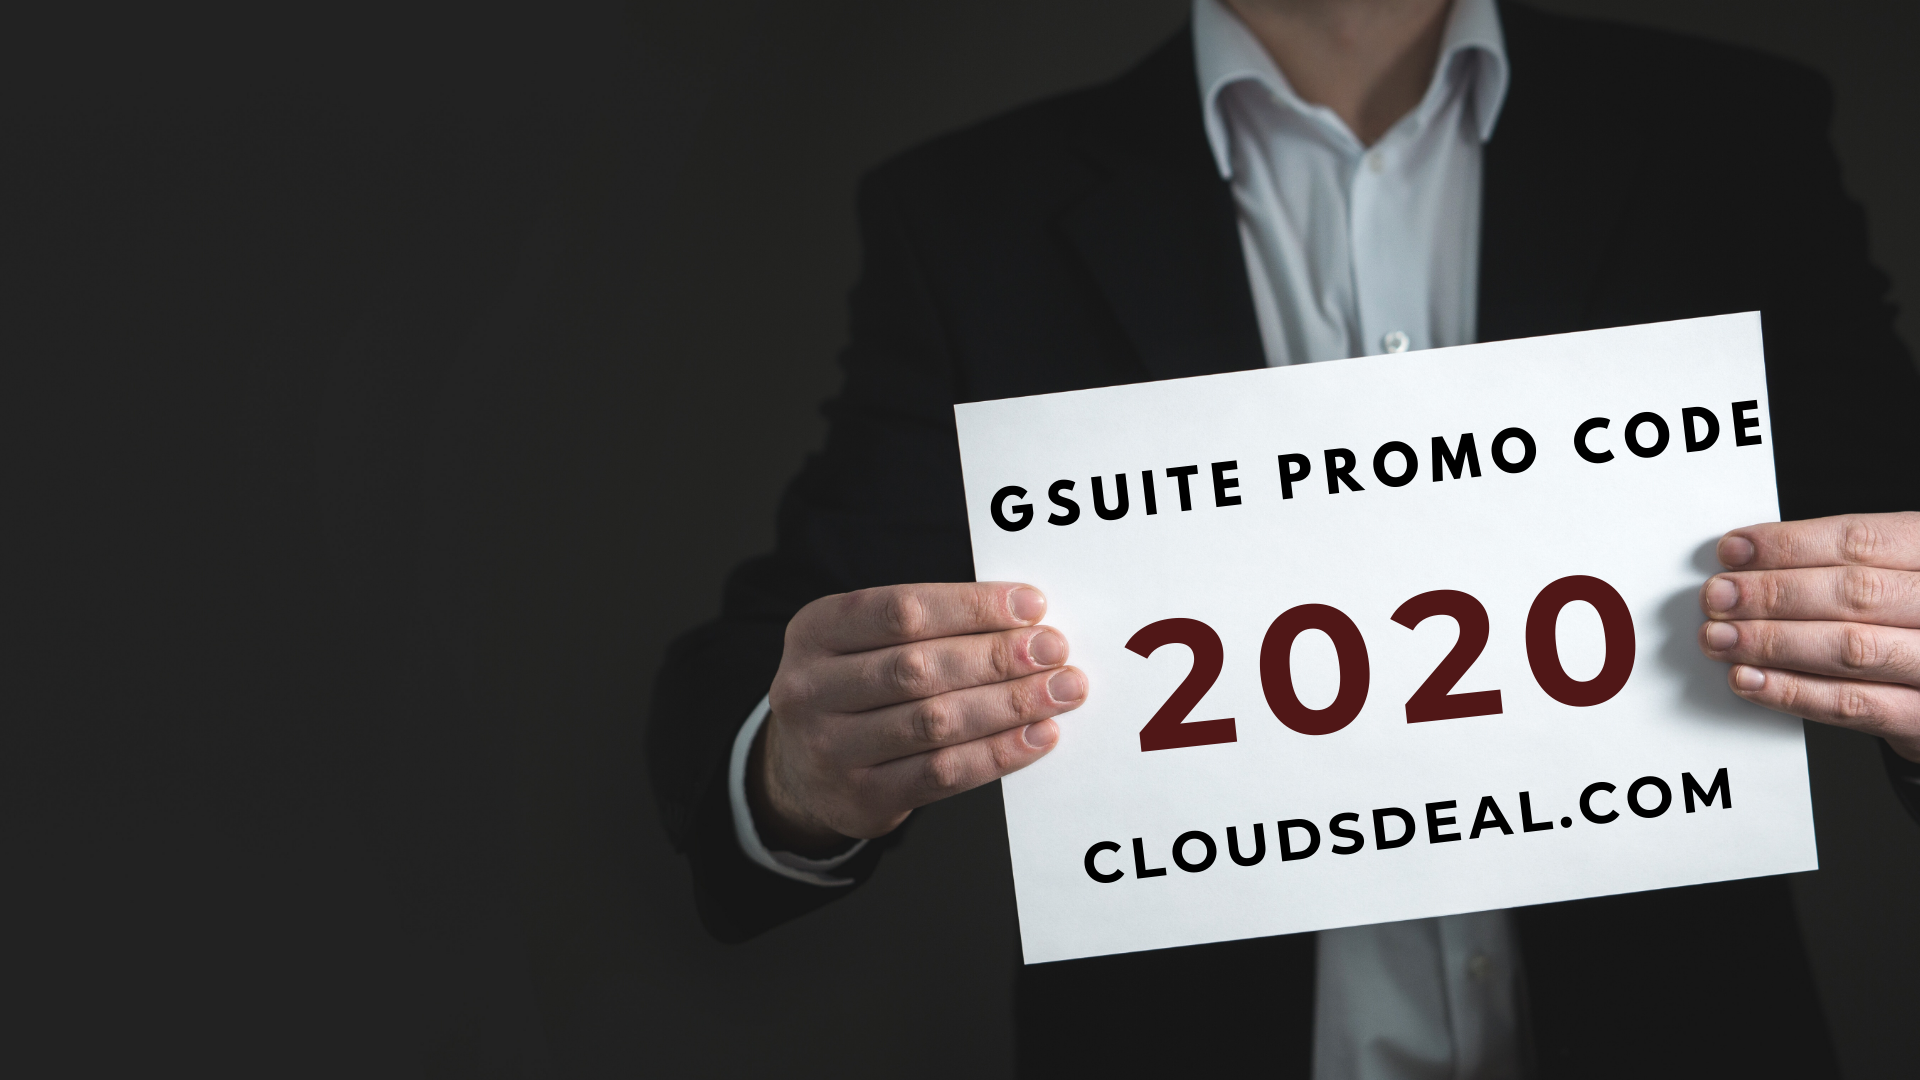 G Suite Business Promo Code USA 2020